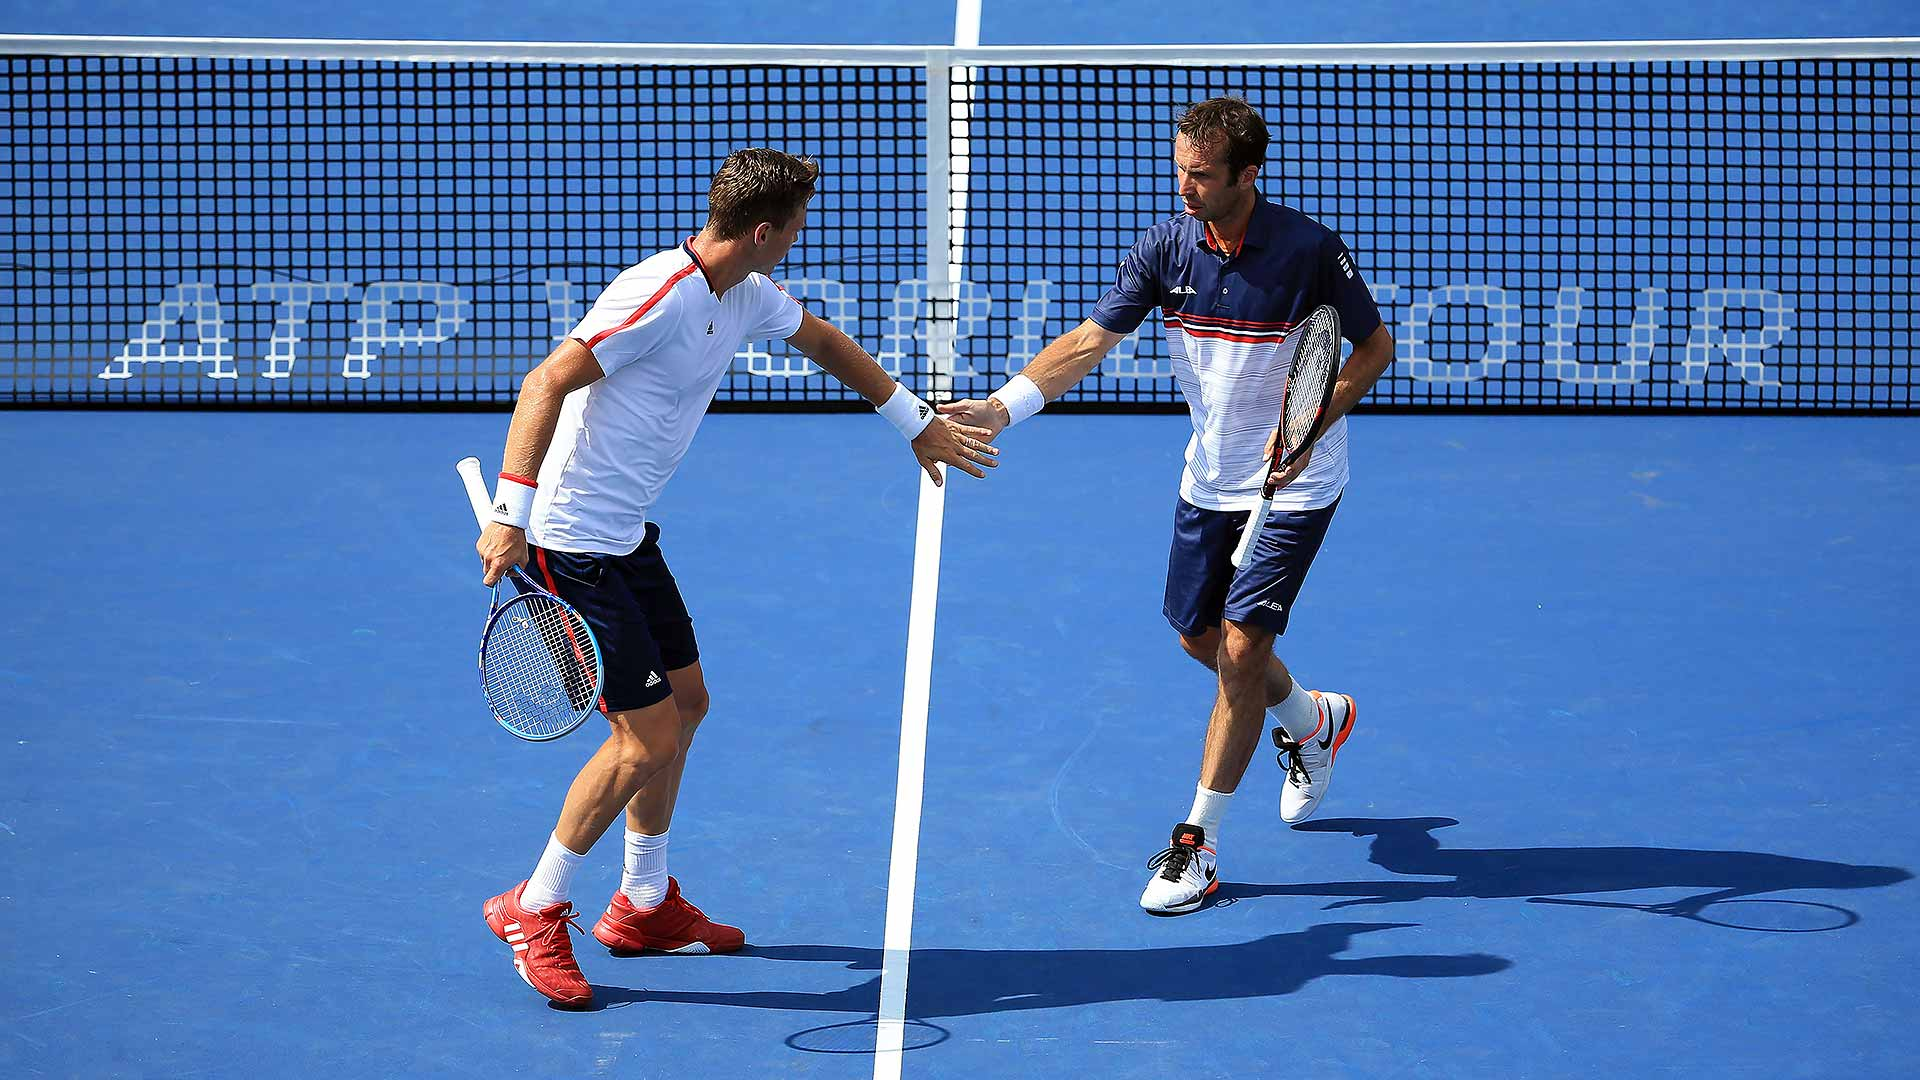 Berdych, Stepanek